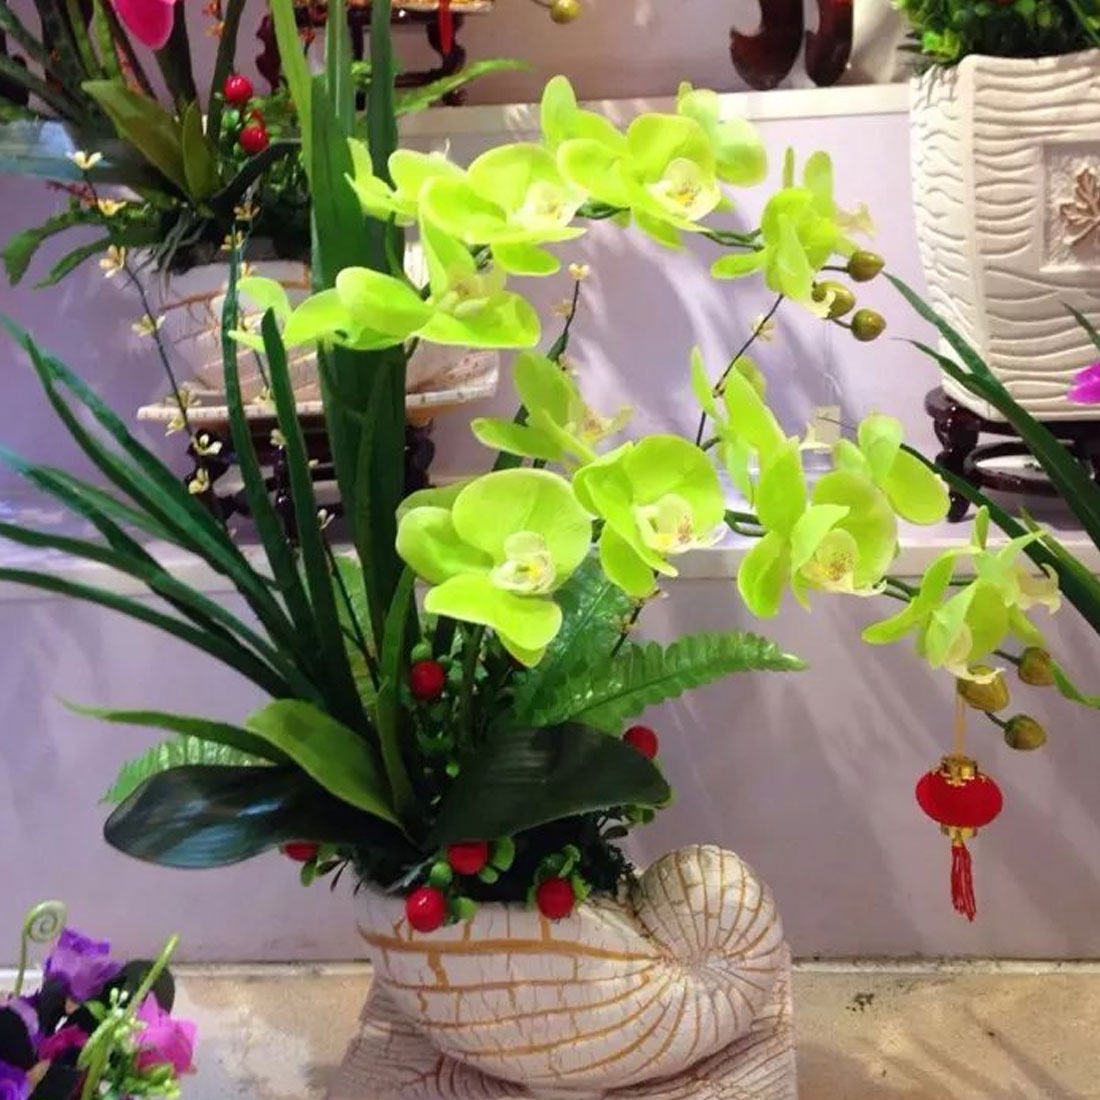 Artificial Flower Real Touch Latex Orchid Flowers with Leaves Wedding Decoration